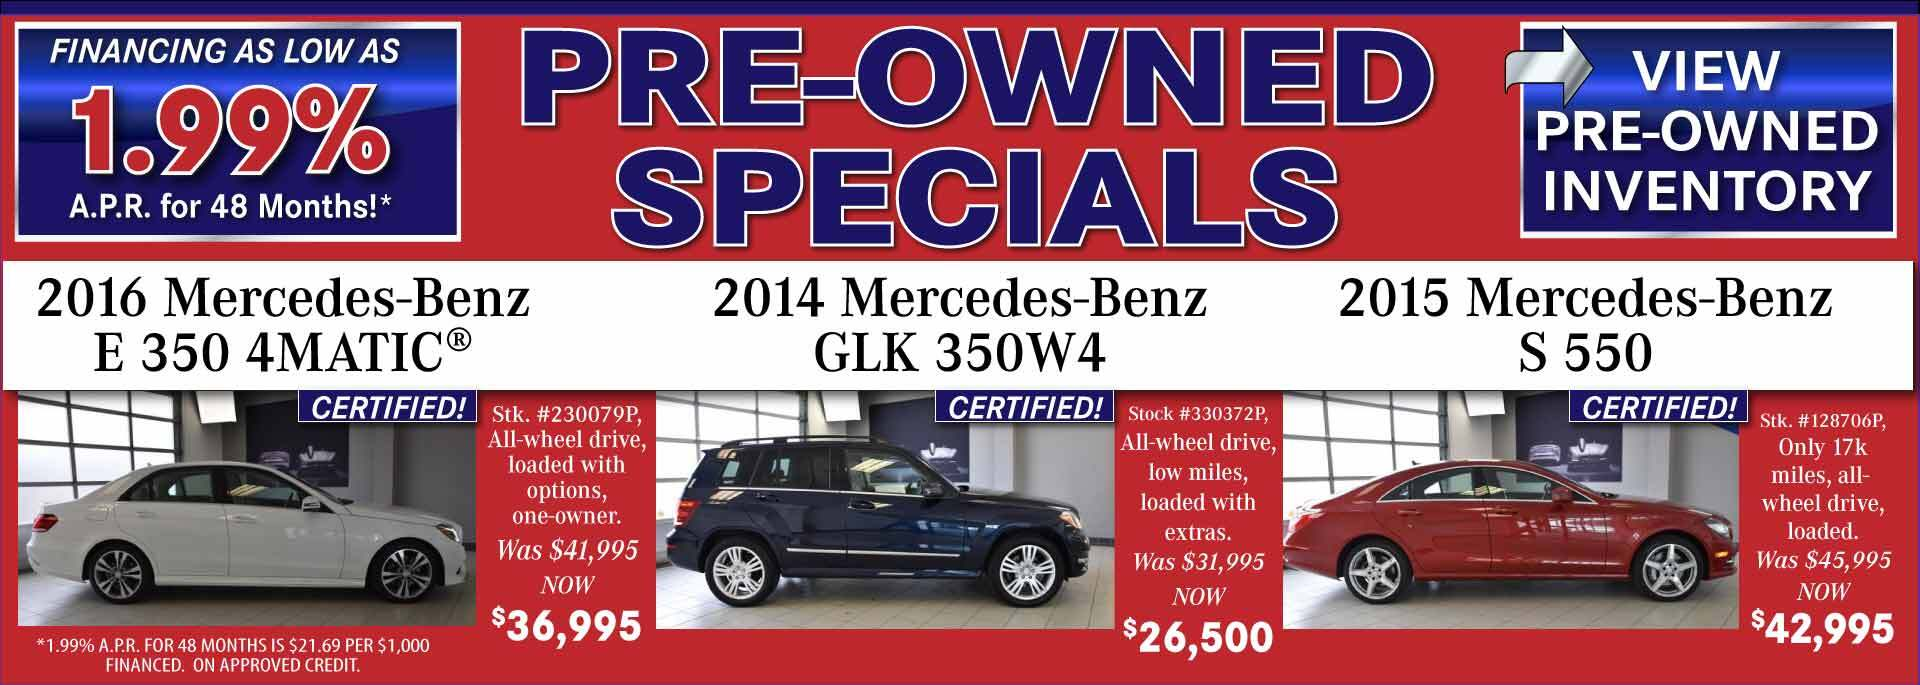 Pre-Owned Specials - July